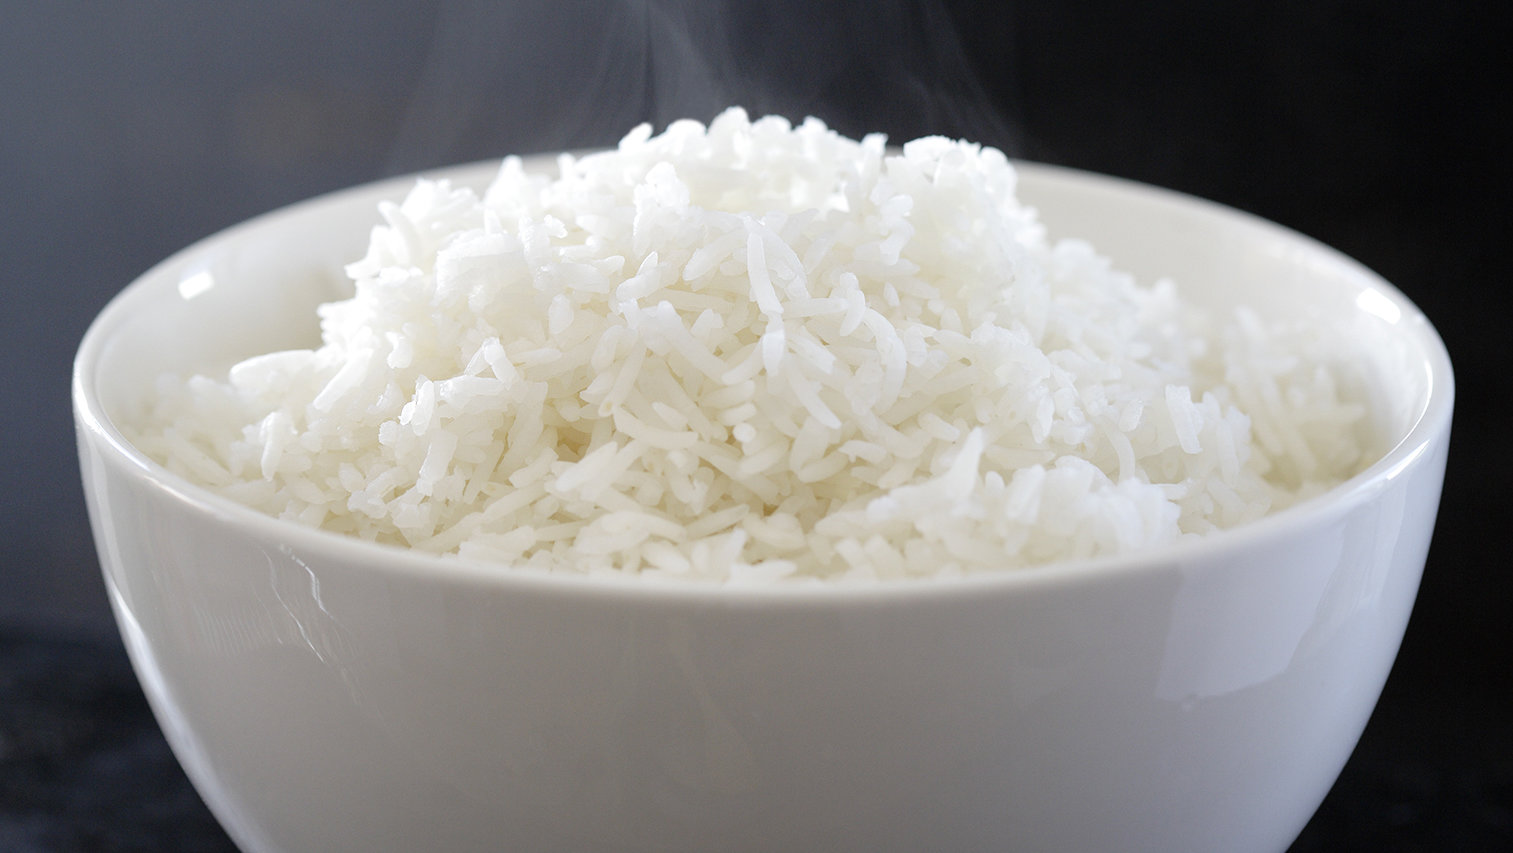 This is How a Rice Cooker Knows When the Rice is Ready - Tastemaker Mag